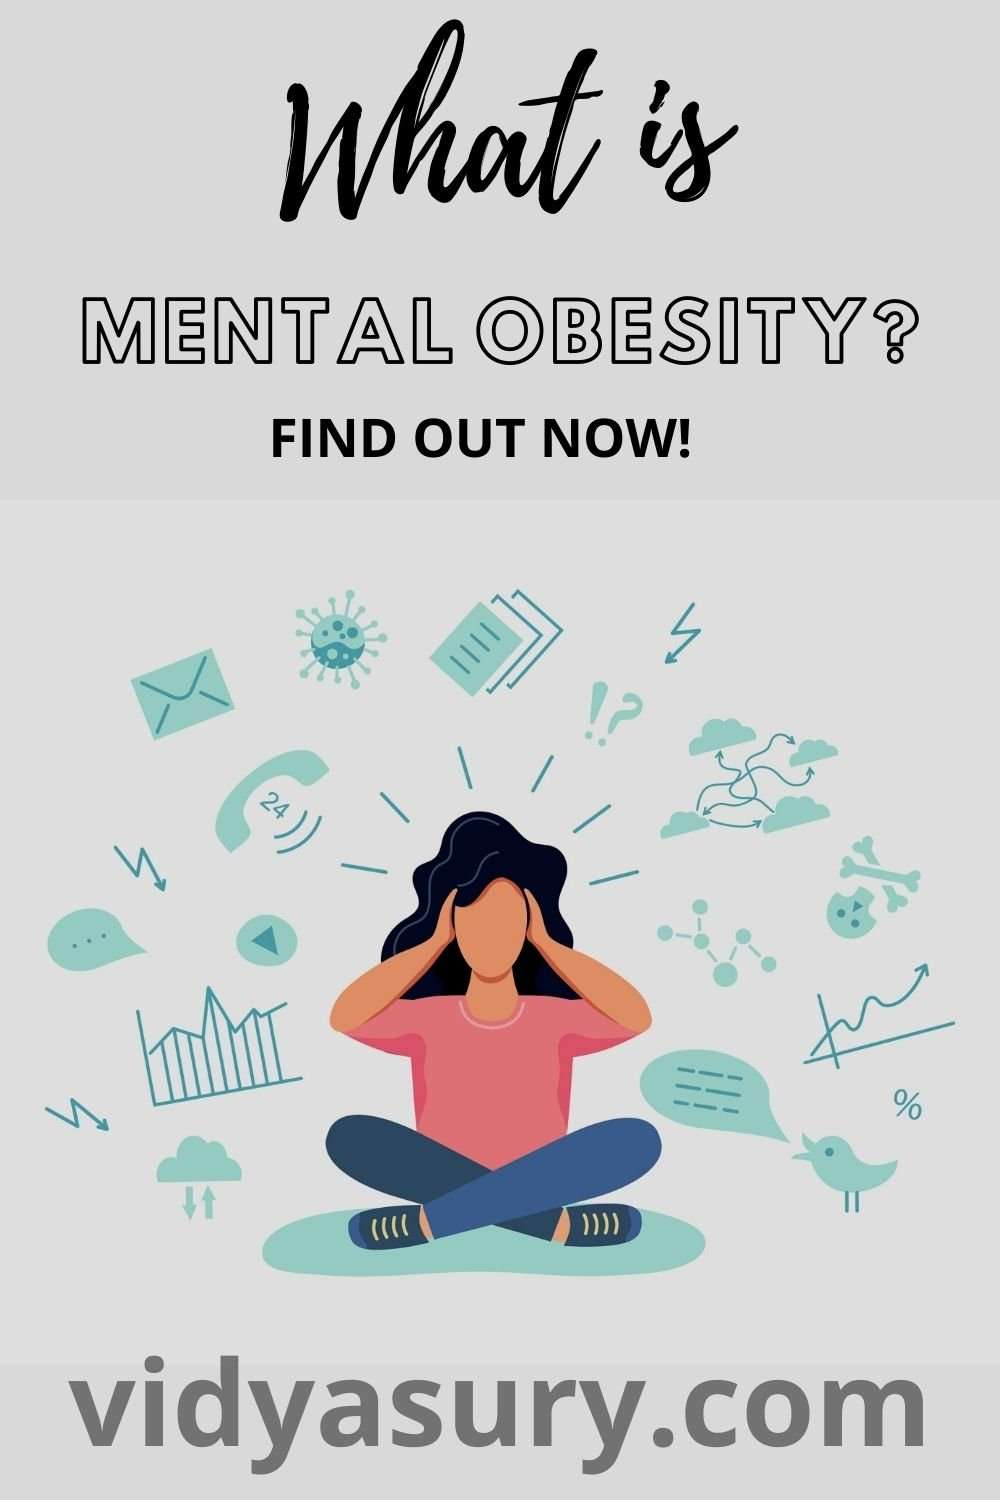 What is mental obesity find out now